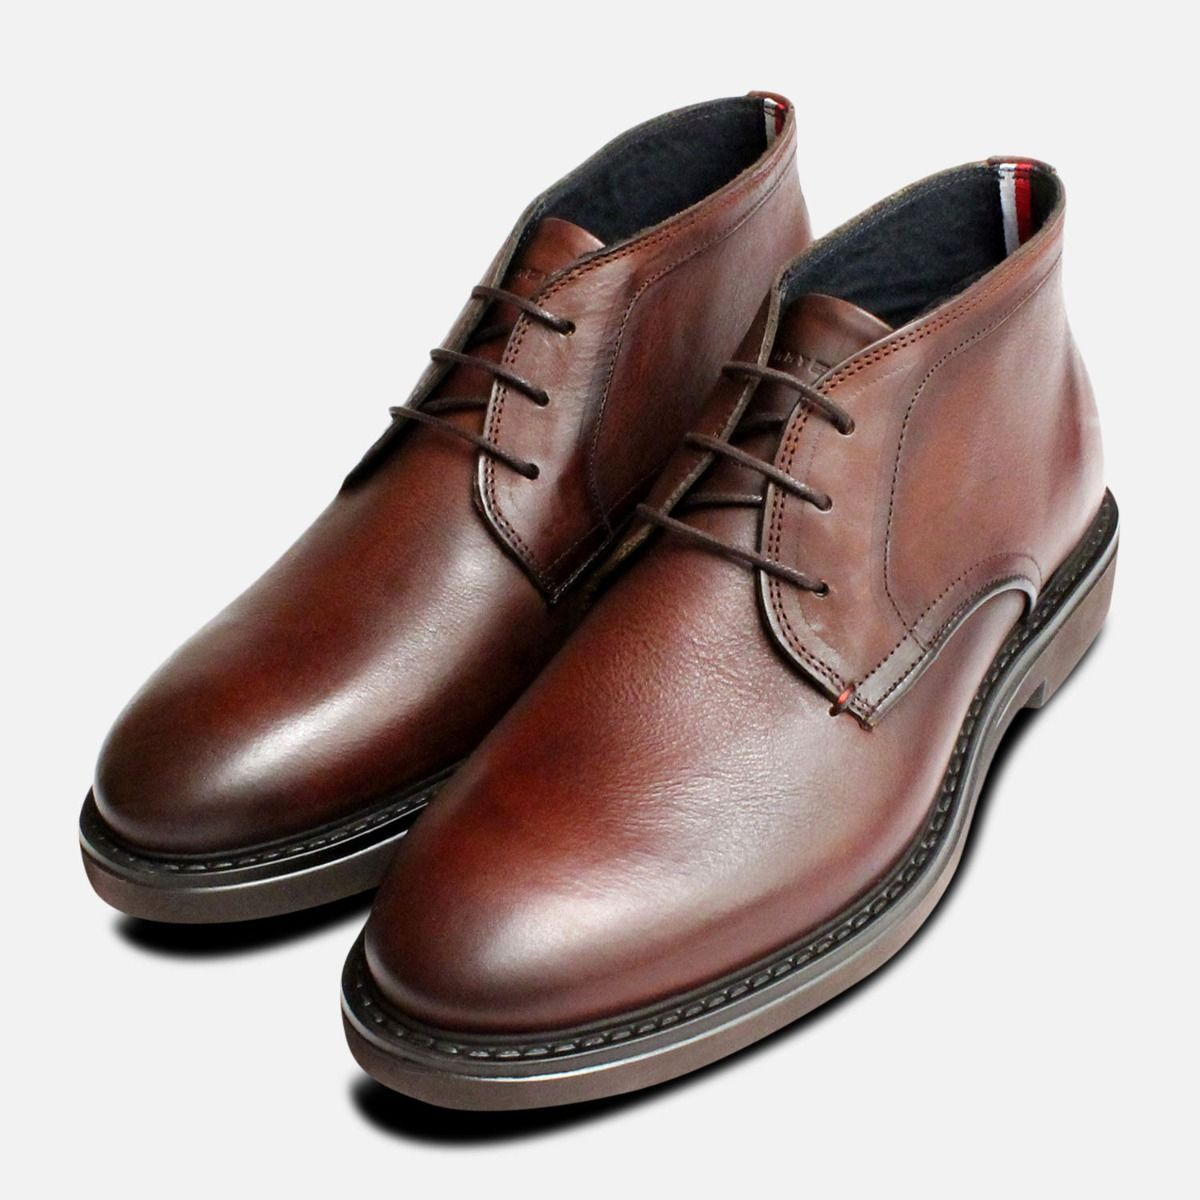 bfd0ca2d5 Tommy Hilfiger Luxury Brown Austin Chukka Boots